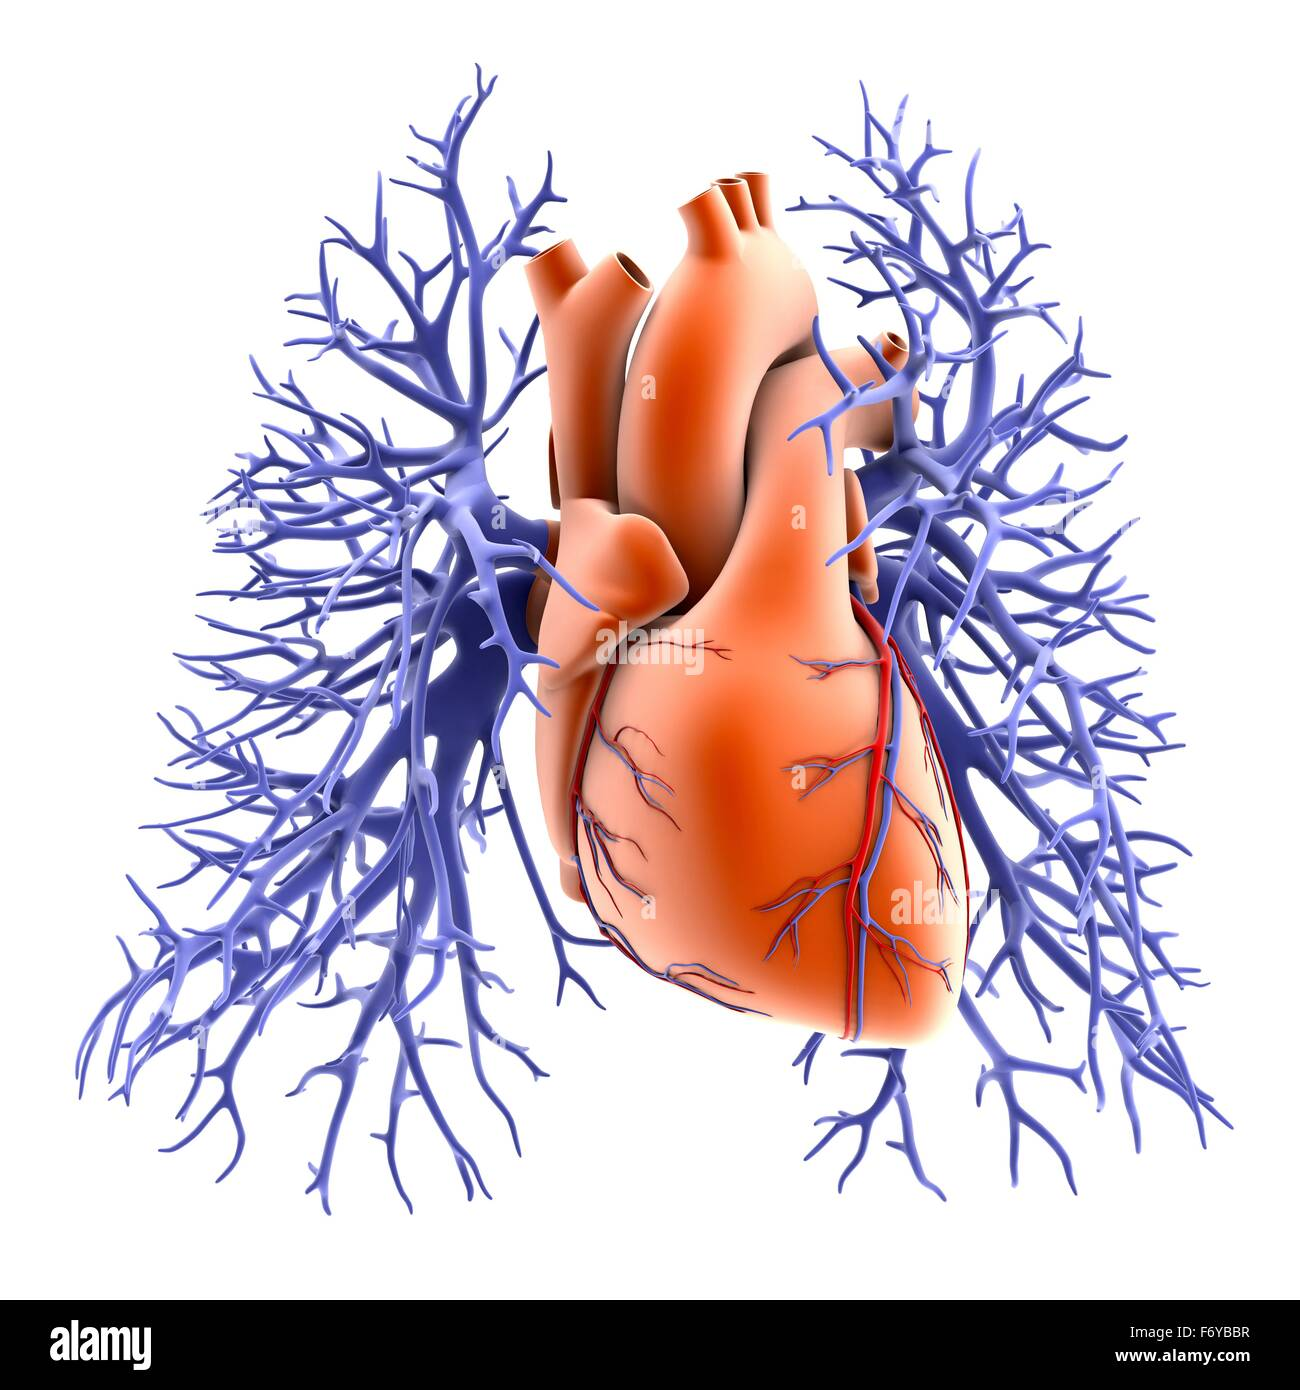 Circulatory System Of Heart And Lungs Computer Artwork The Heart